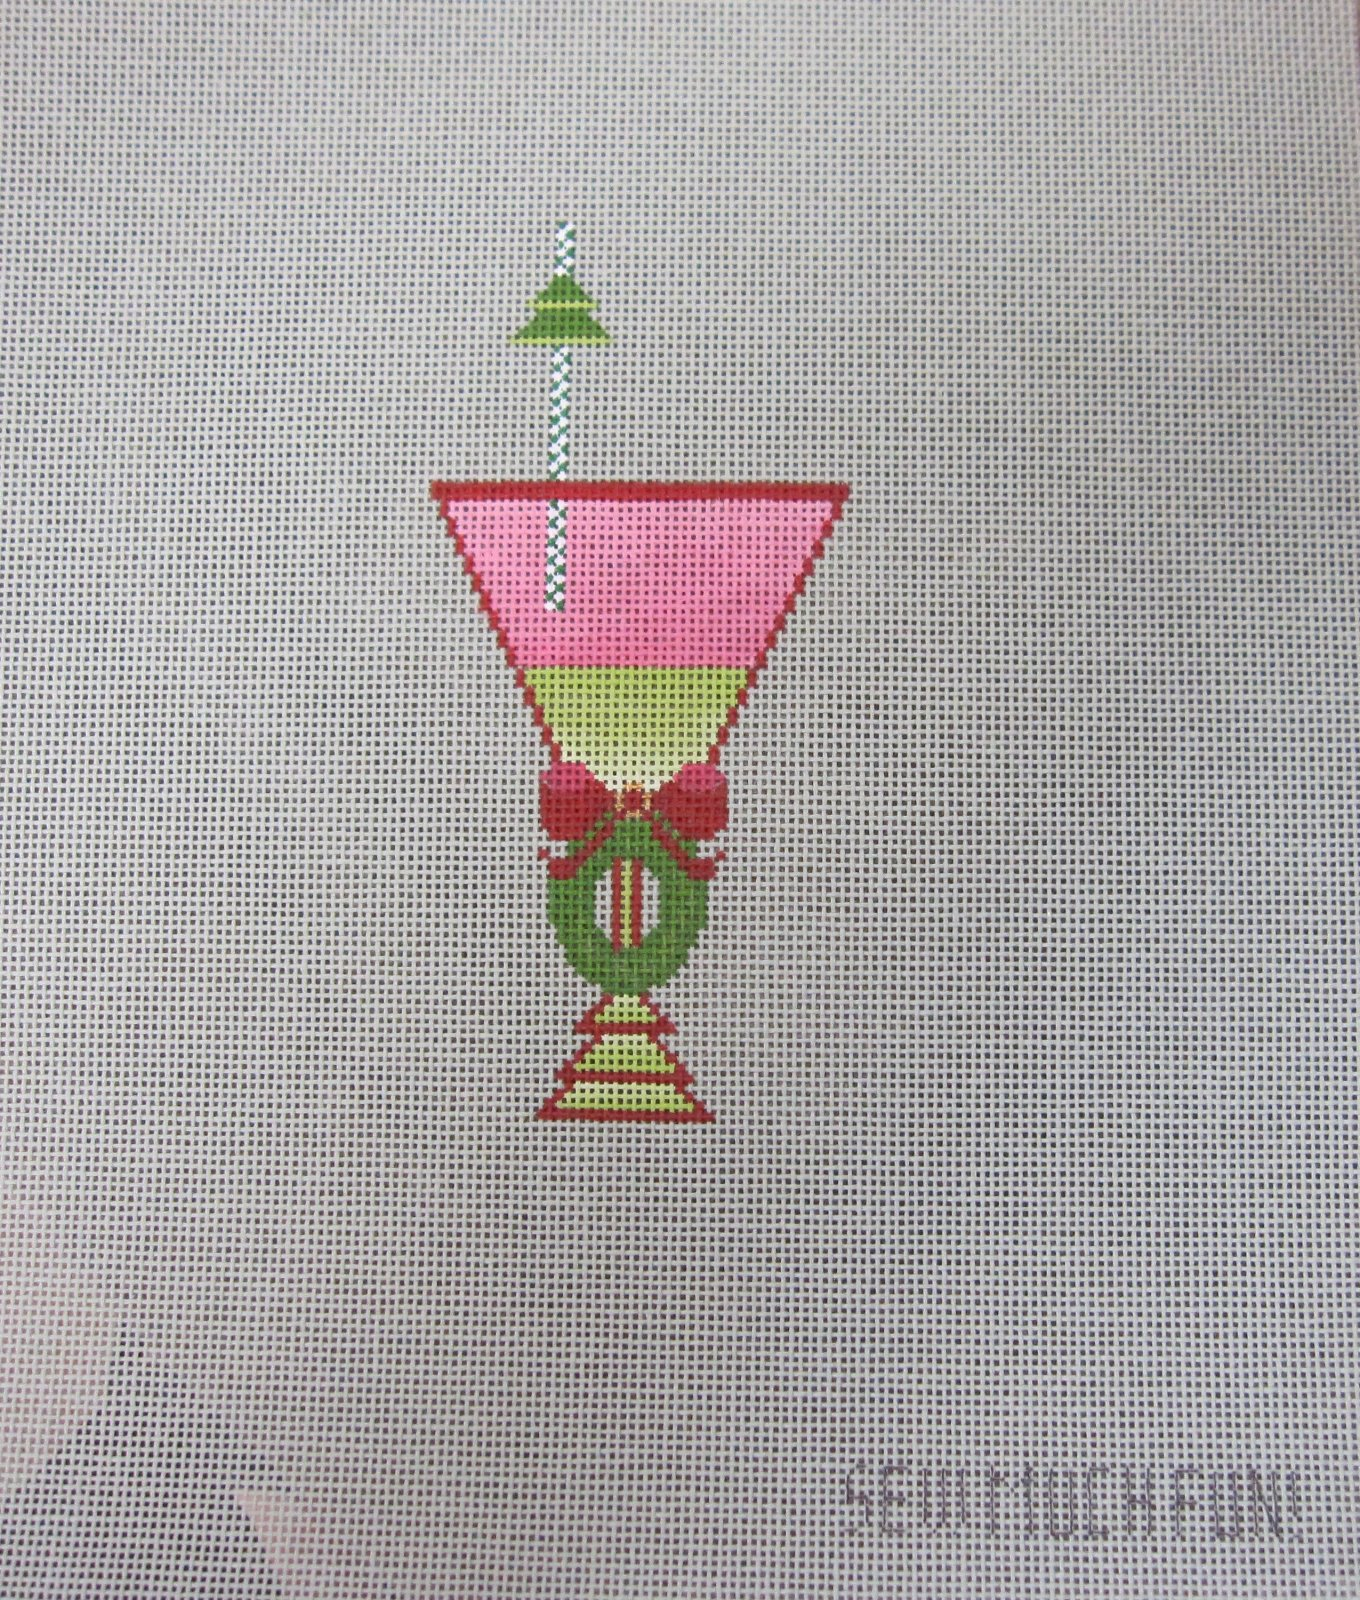 Wreath Drink with stitch guide